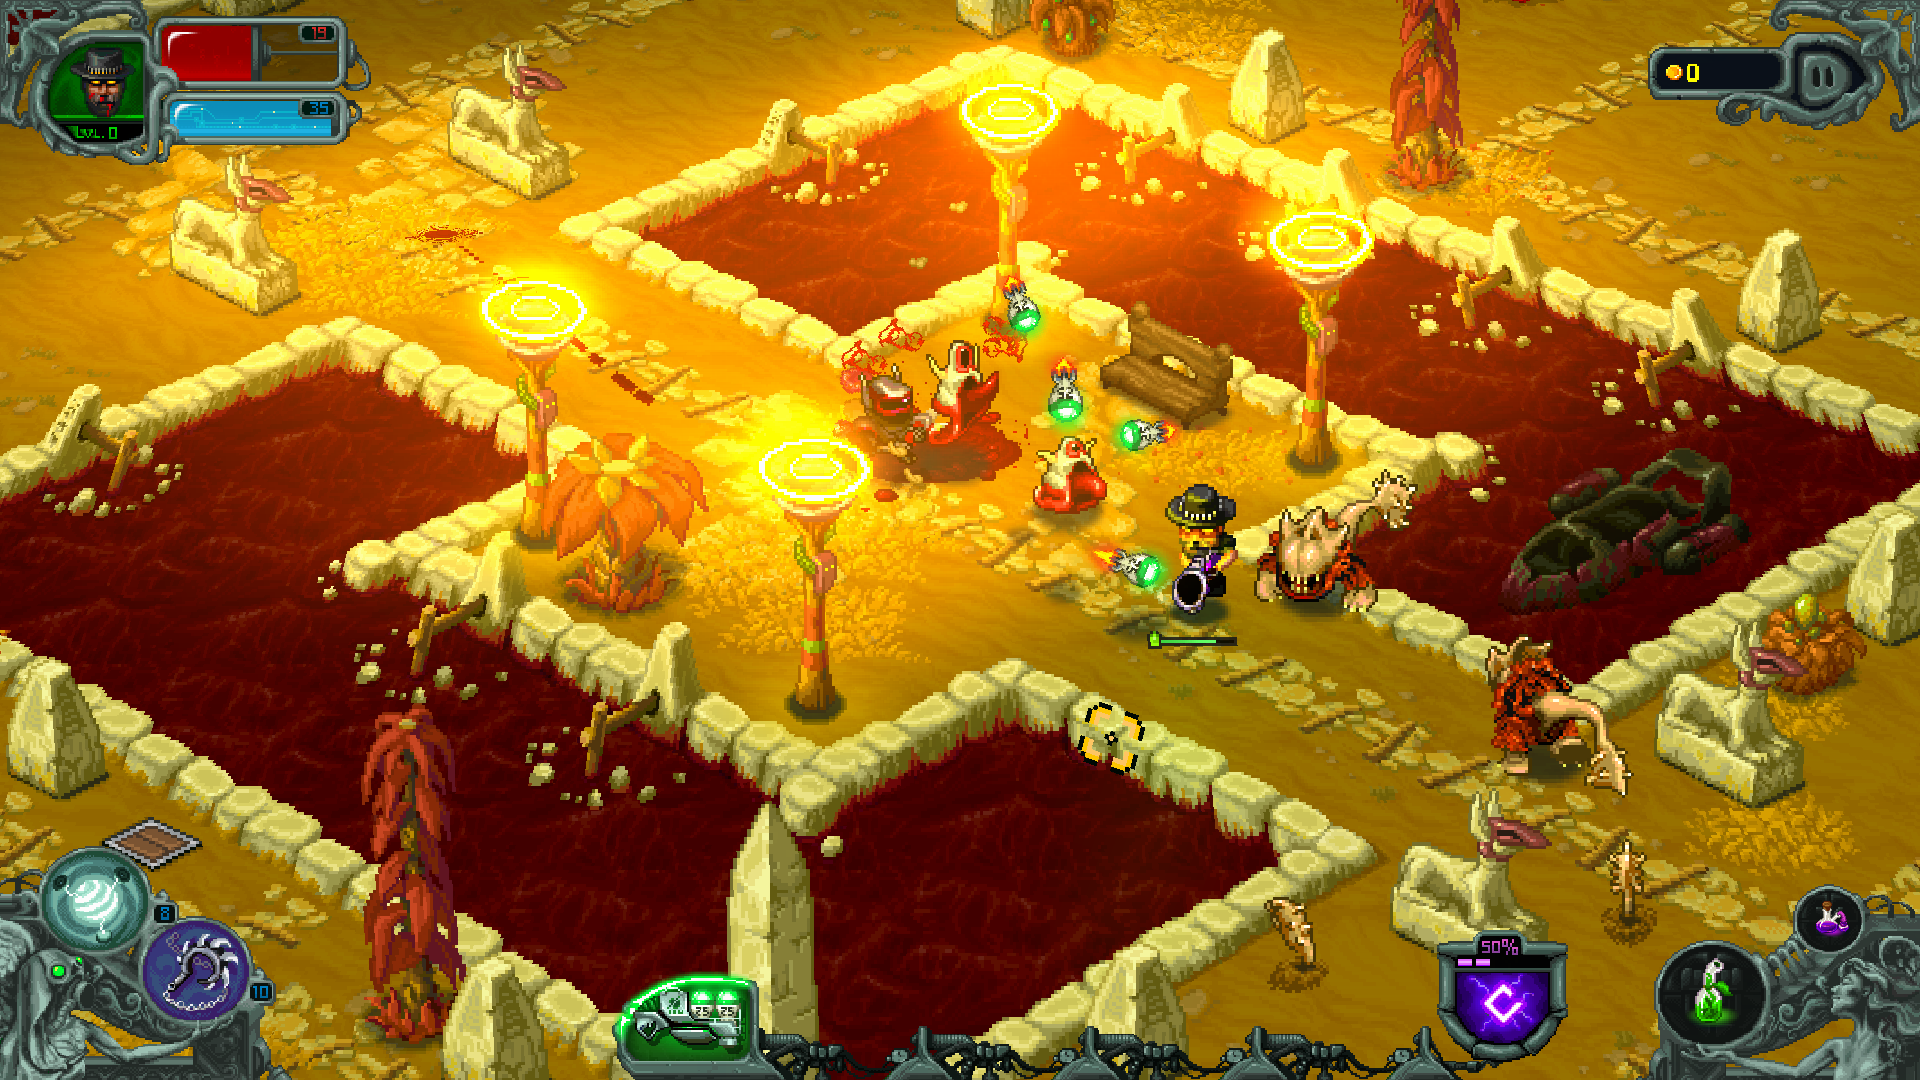 idracula_greenlight_screenshot_02